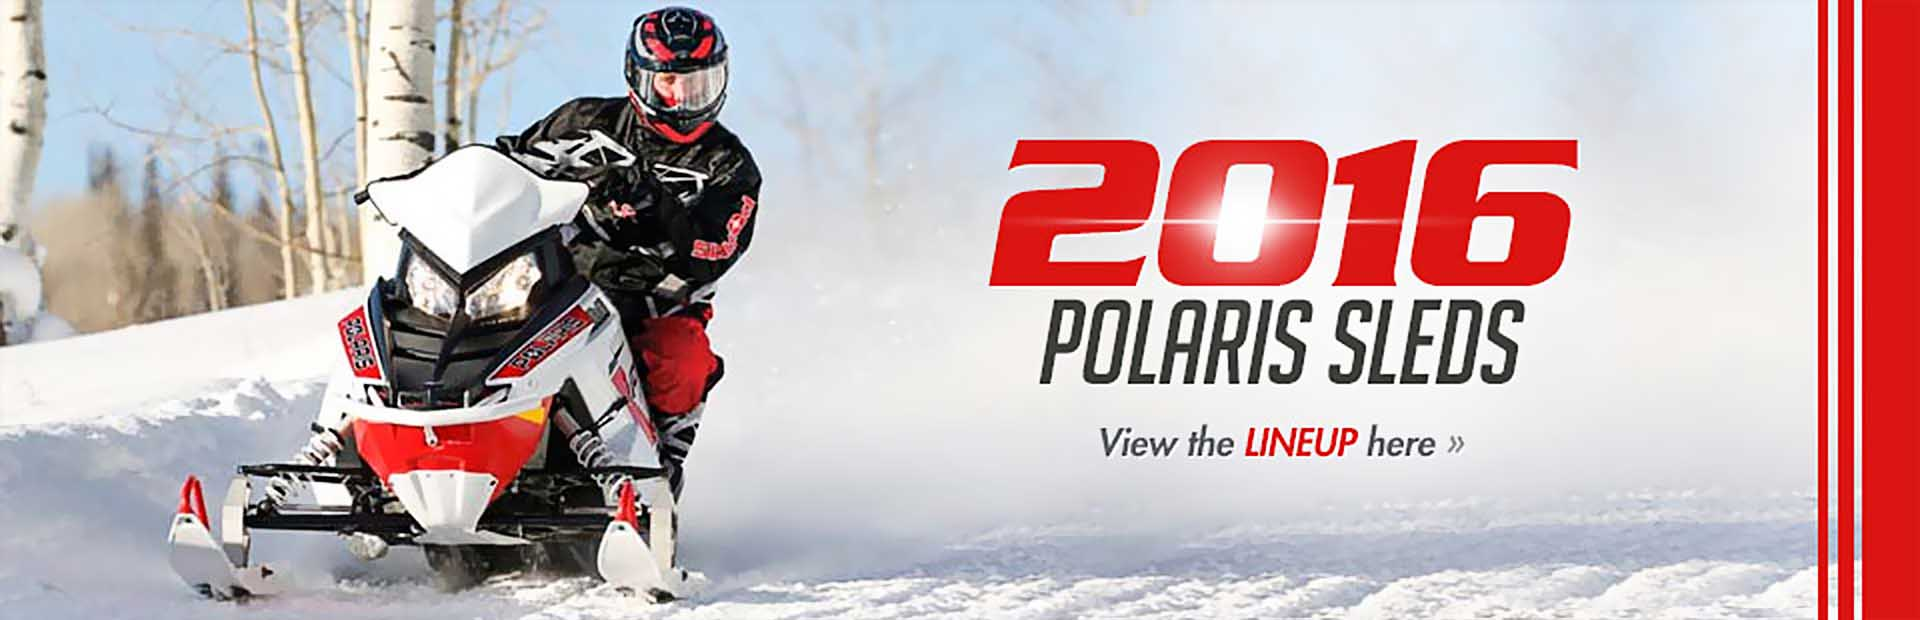 2016 Polaris Sleds: Click here to view the lineup.